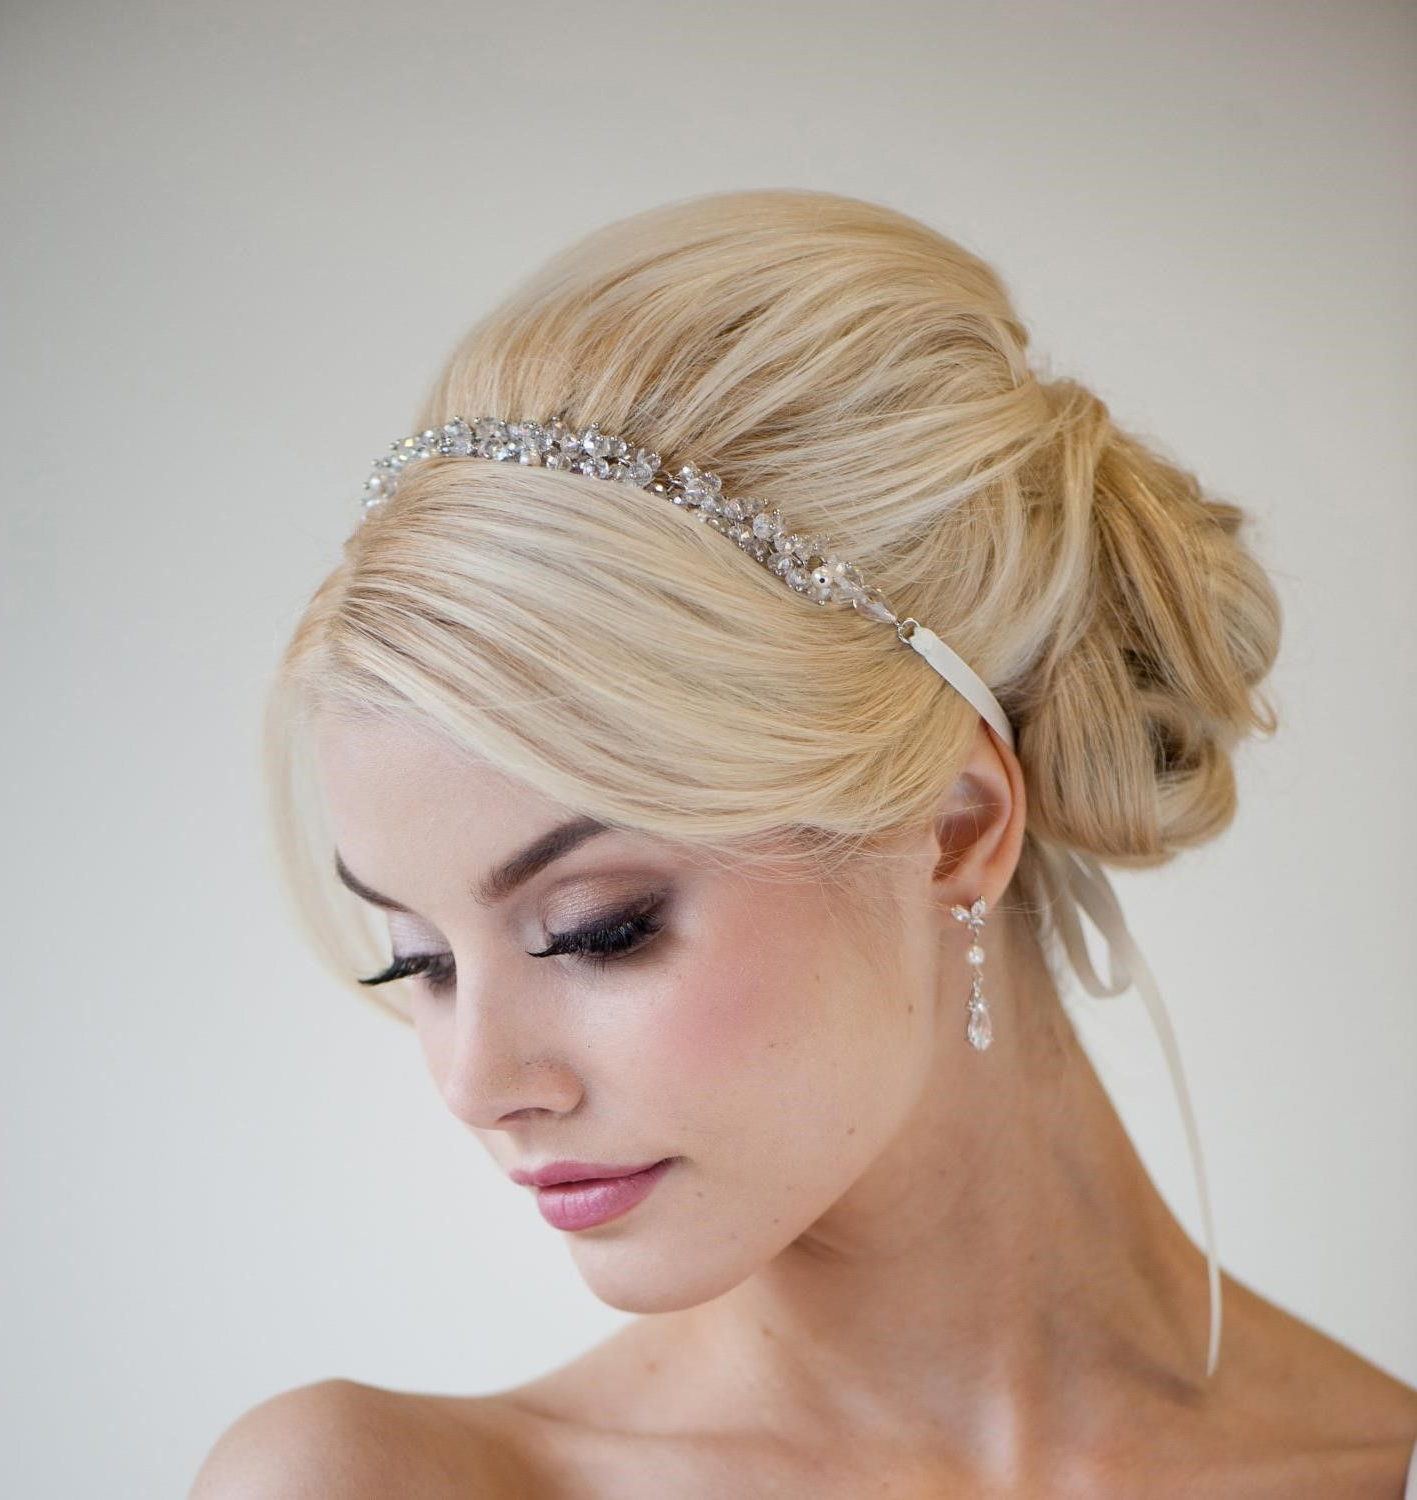 Famous Neat Bridal Hairdos With Headband With Wedding Hair Updo With Headband (Gallery 3 of 20)